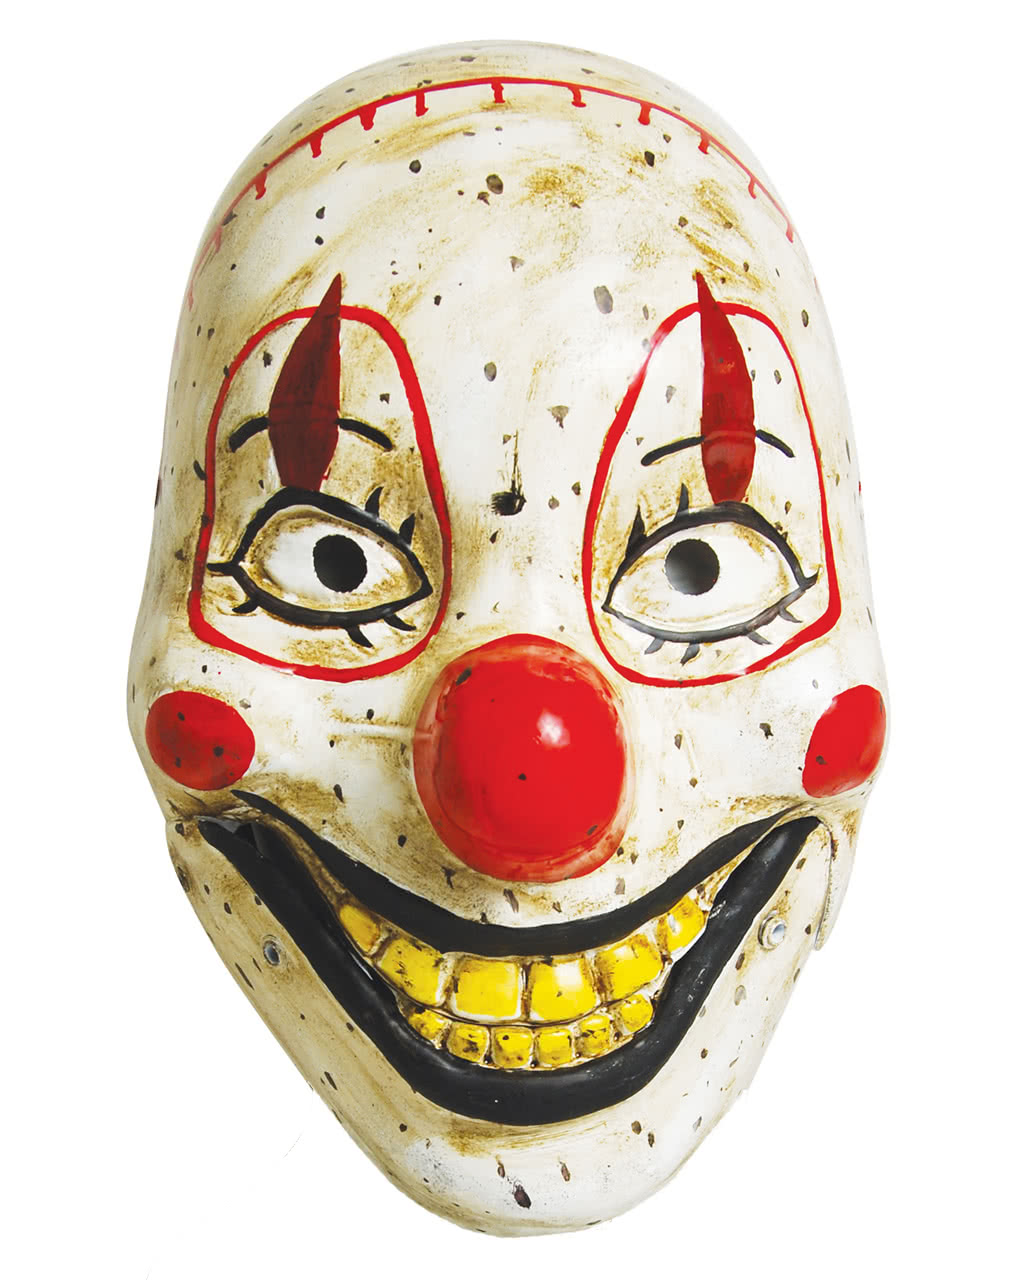 creepy clown puppen maske faschingsverkleidung. Black Bedroom Furniture Sets. Home Design Ideas